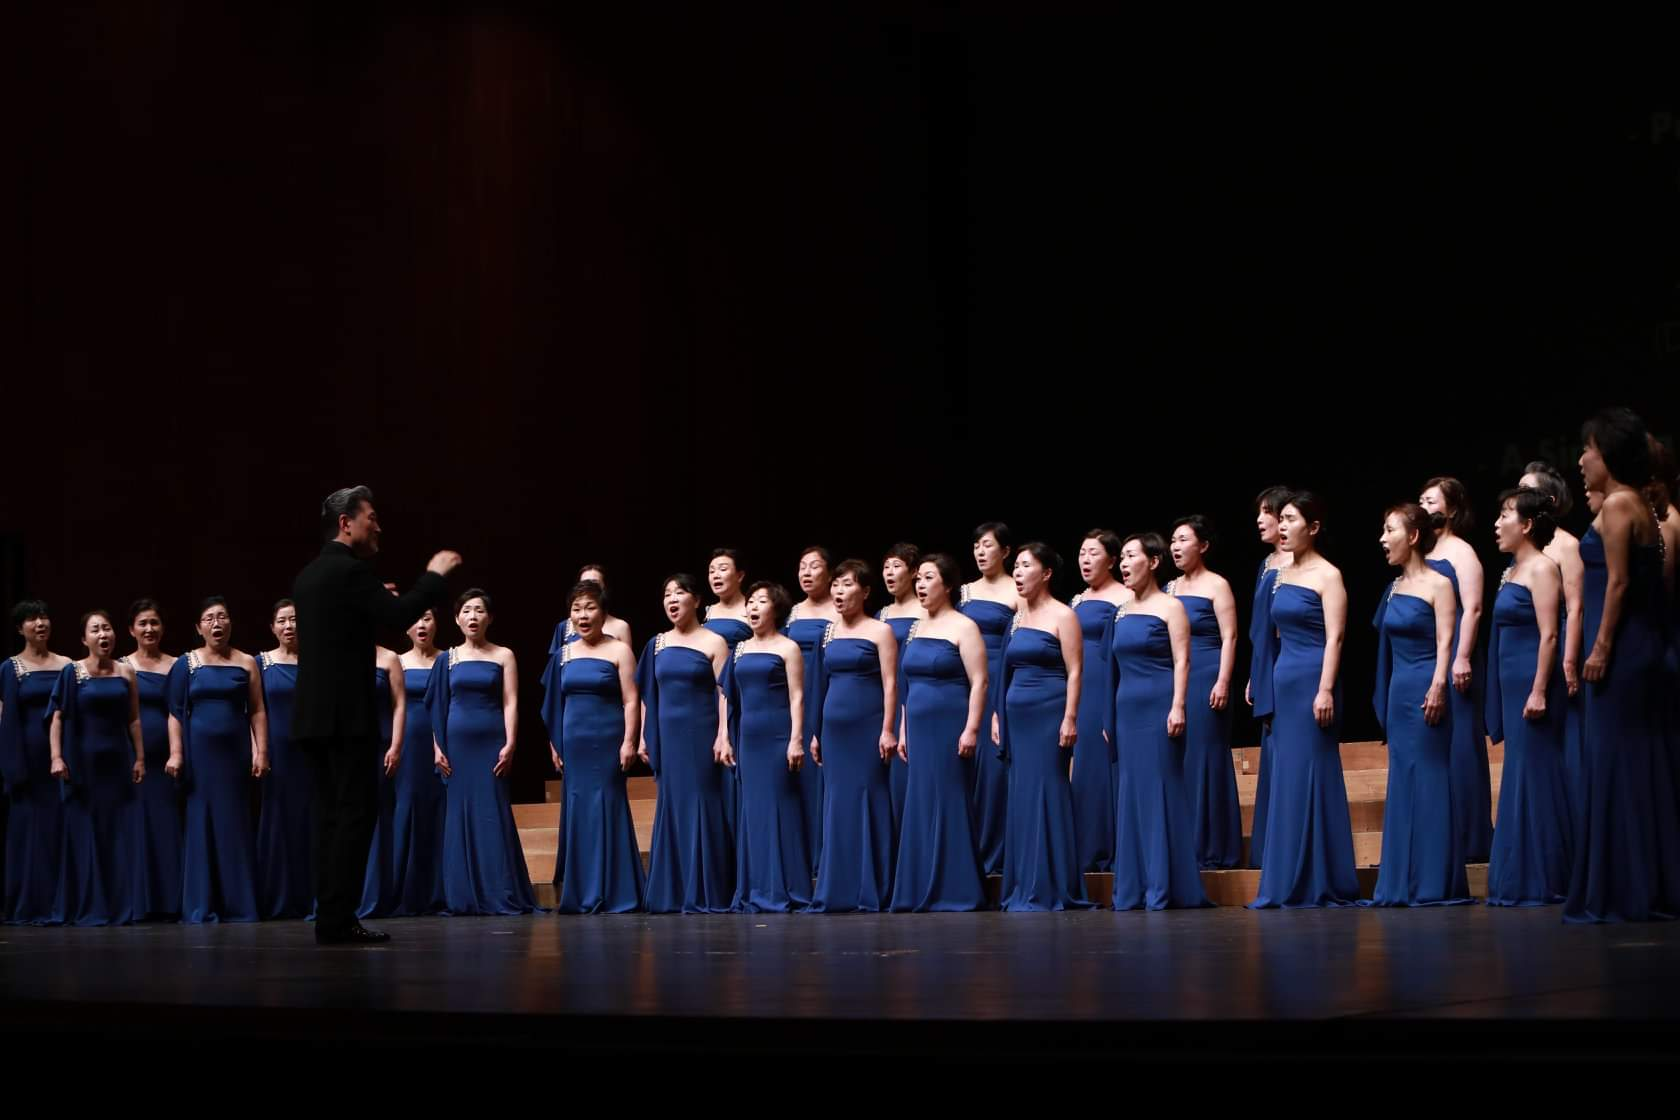 Luvoce ladies singers in concert with blue dresses